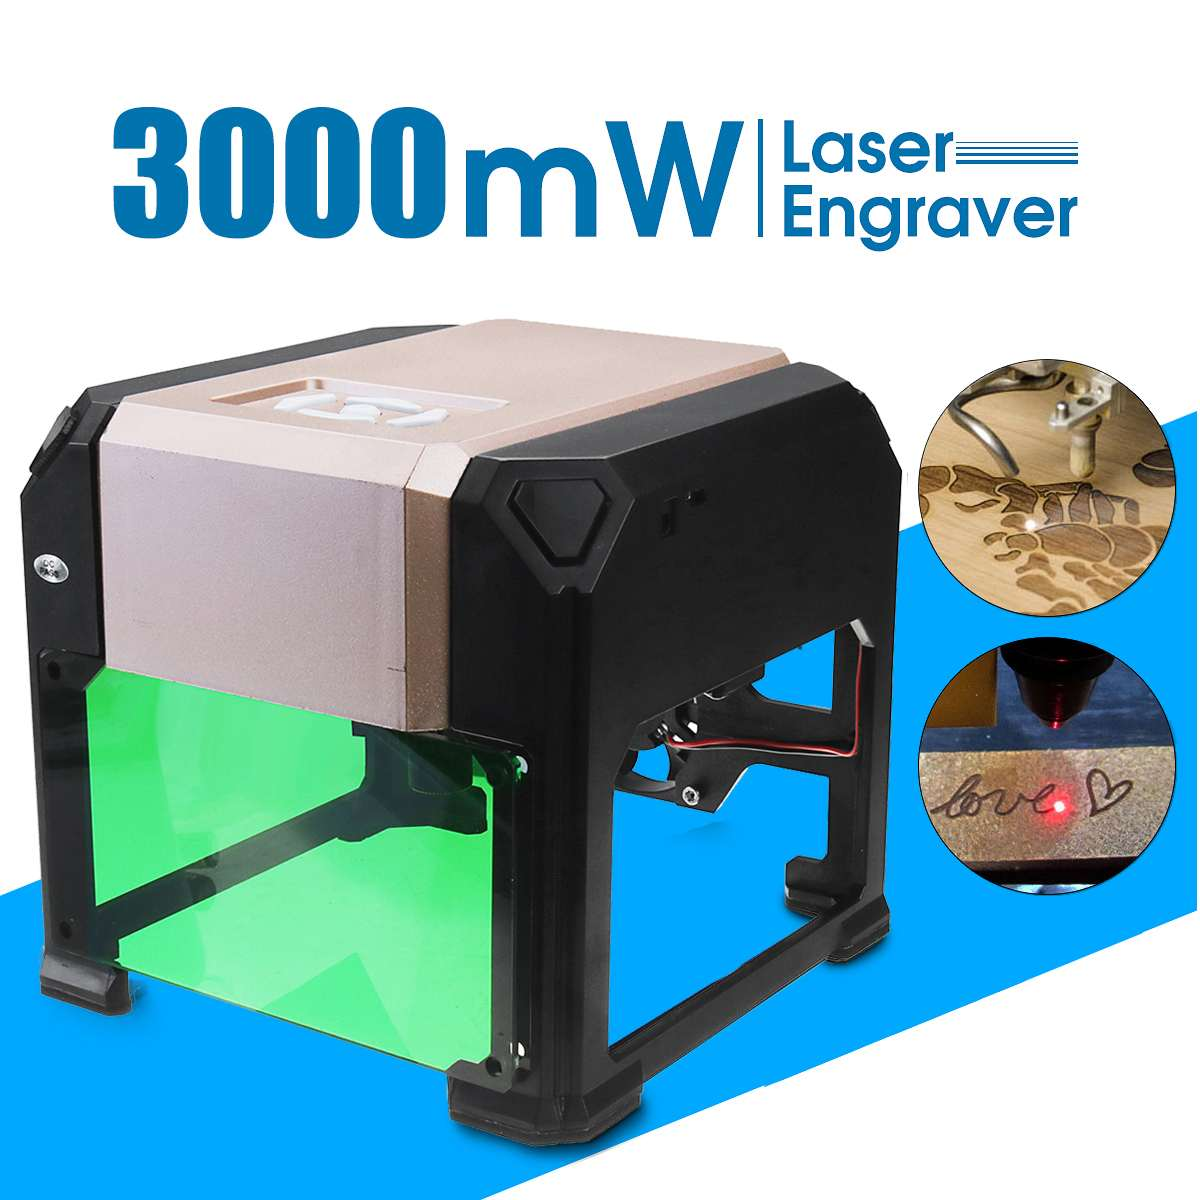 top 10 largest laser engraver diy near me and get free shipping - a342